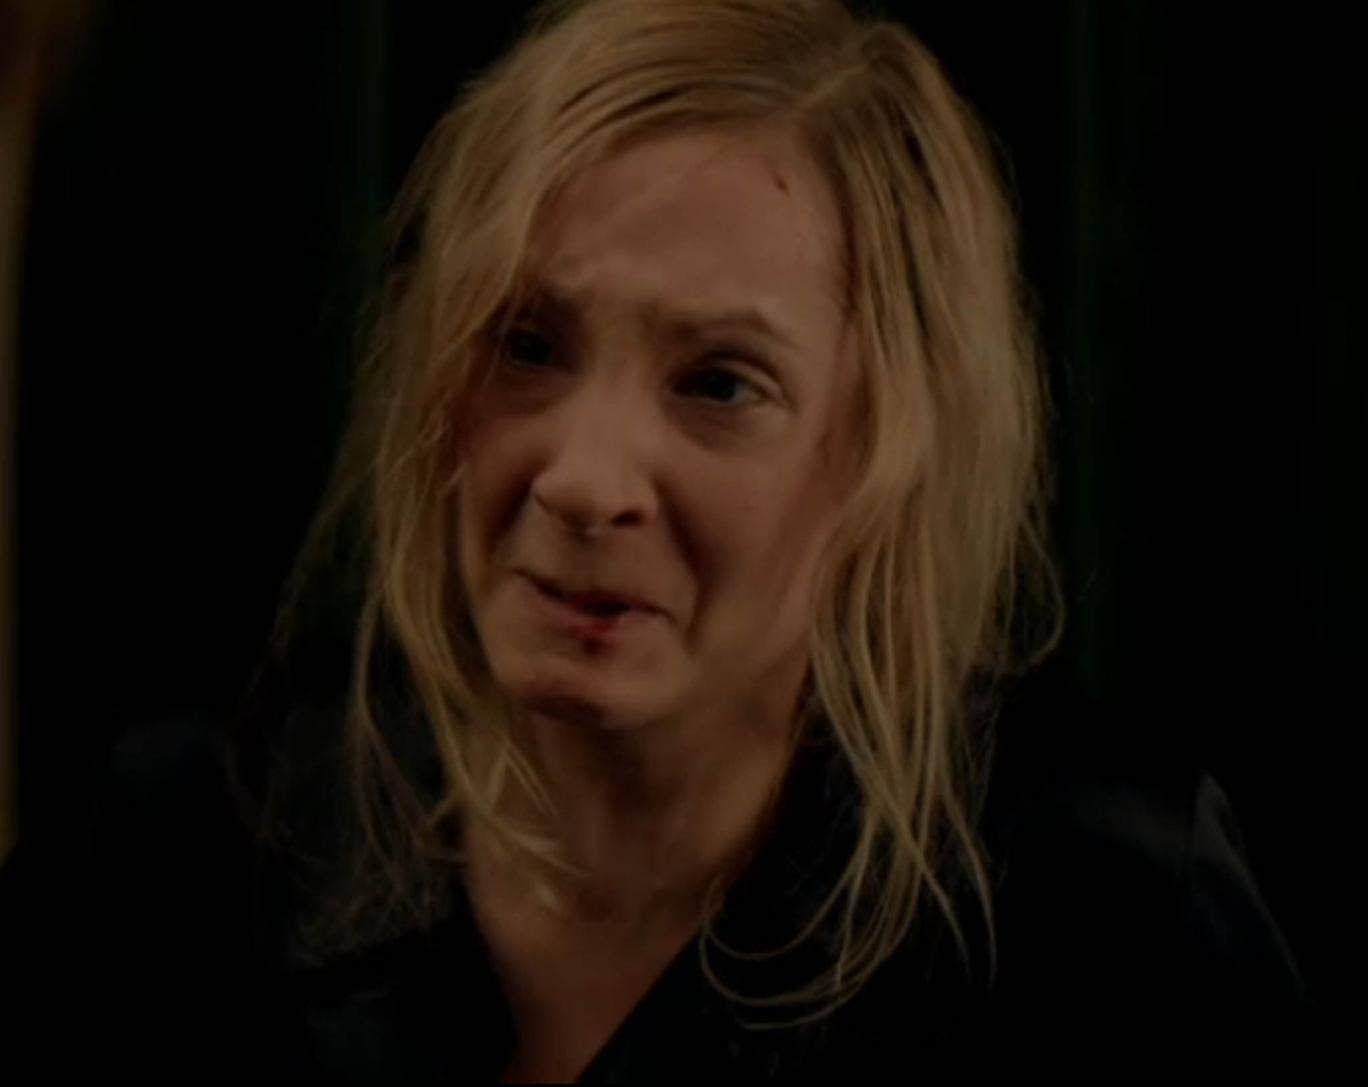 Joanna Froggatt as Anna Bates, who was raped by a visiting valet in Downton Abbey